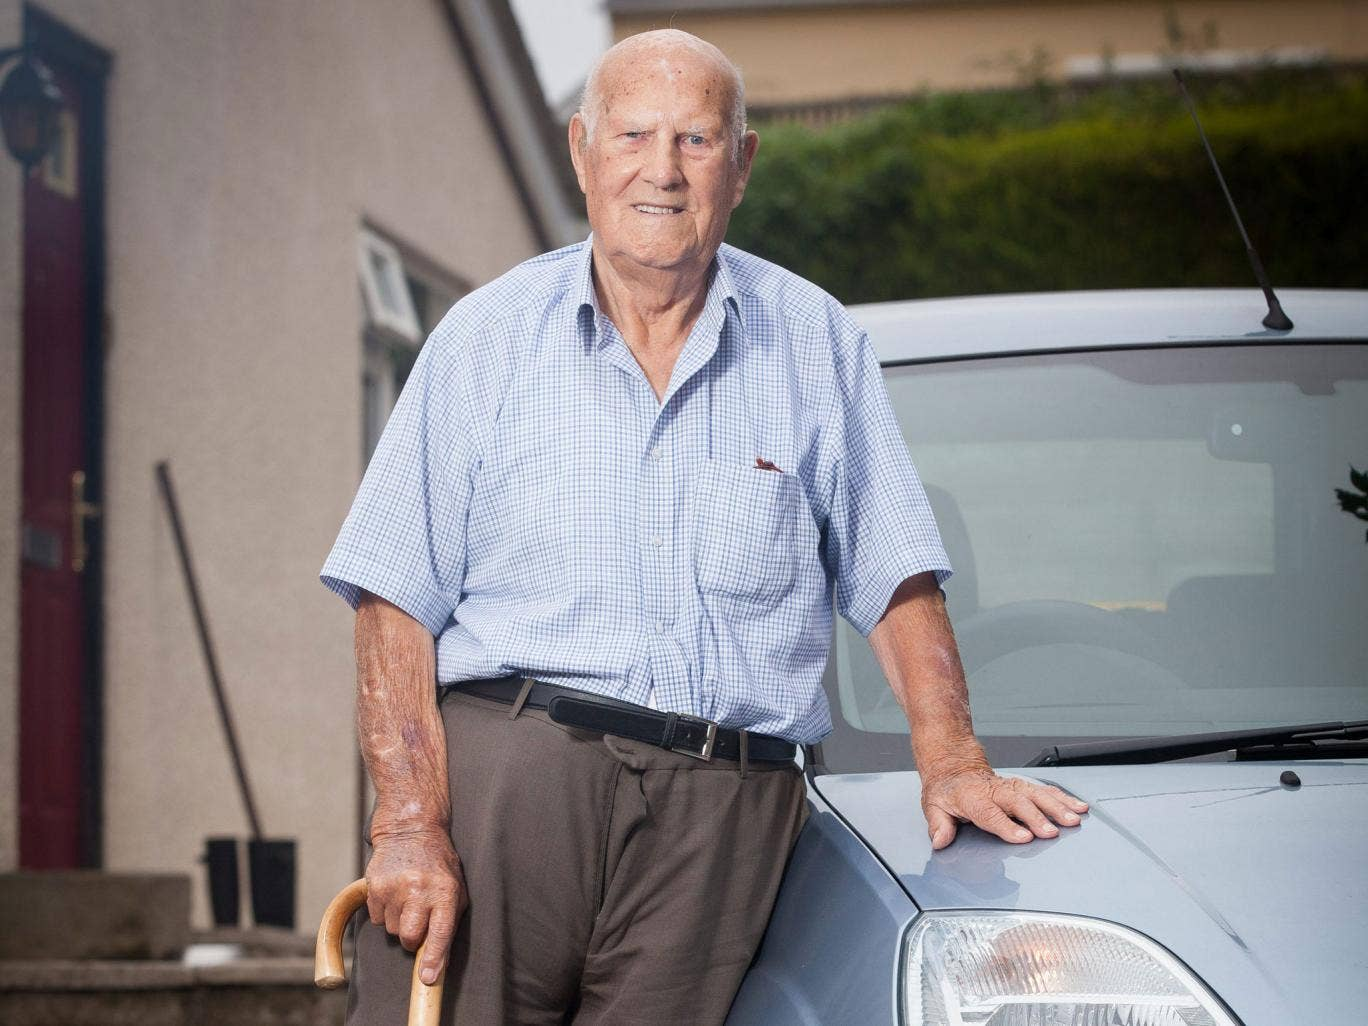 Les Hale, 100, one of Britain's centenarian car drivers, photographed at home in Lydbrook, Gloucestershire